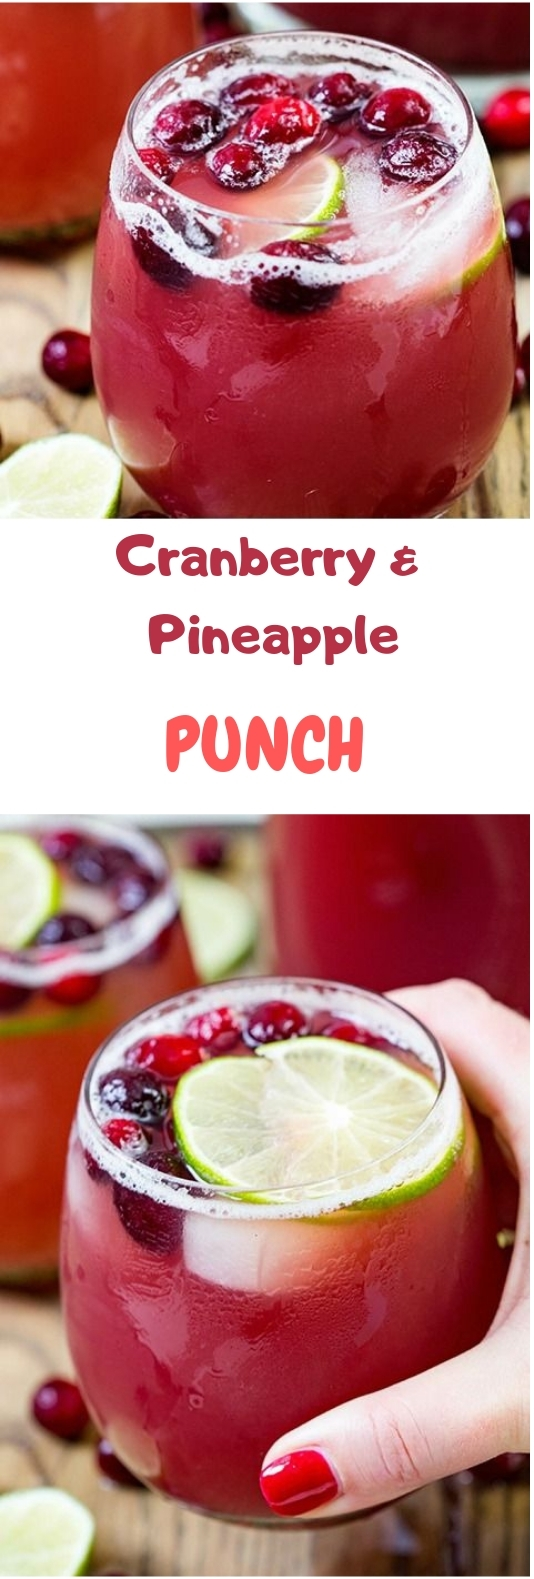 Cranberry Pineapple Punch #punch #nonalcohol